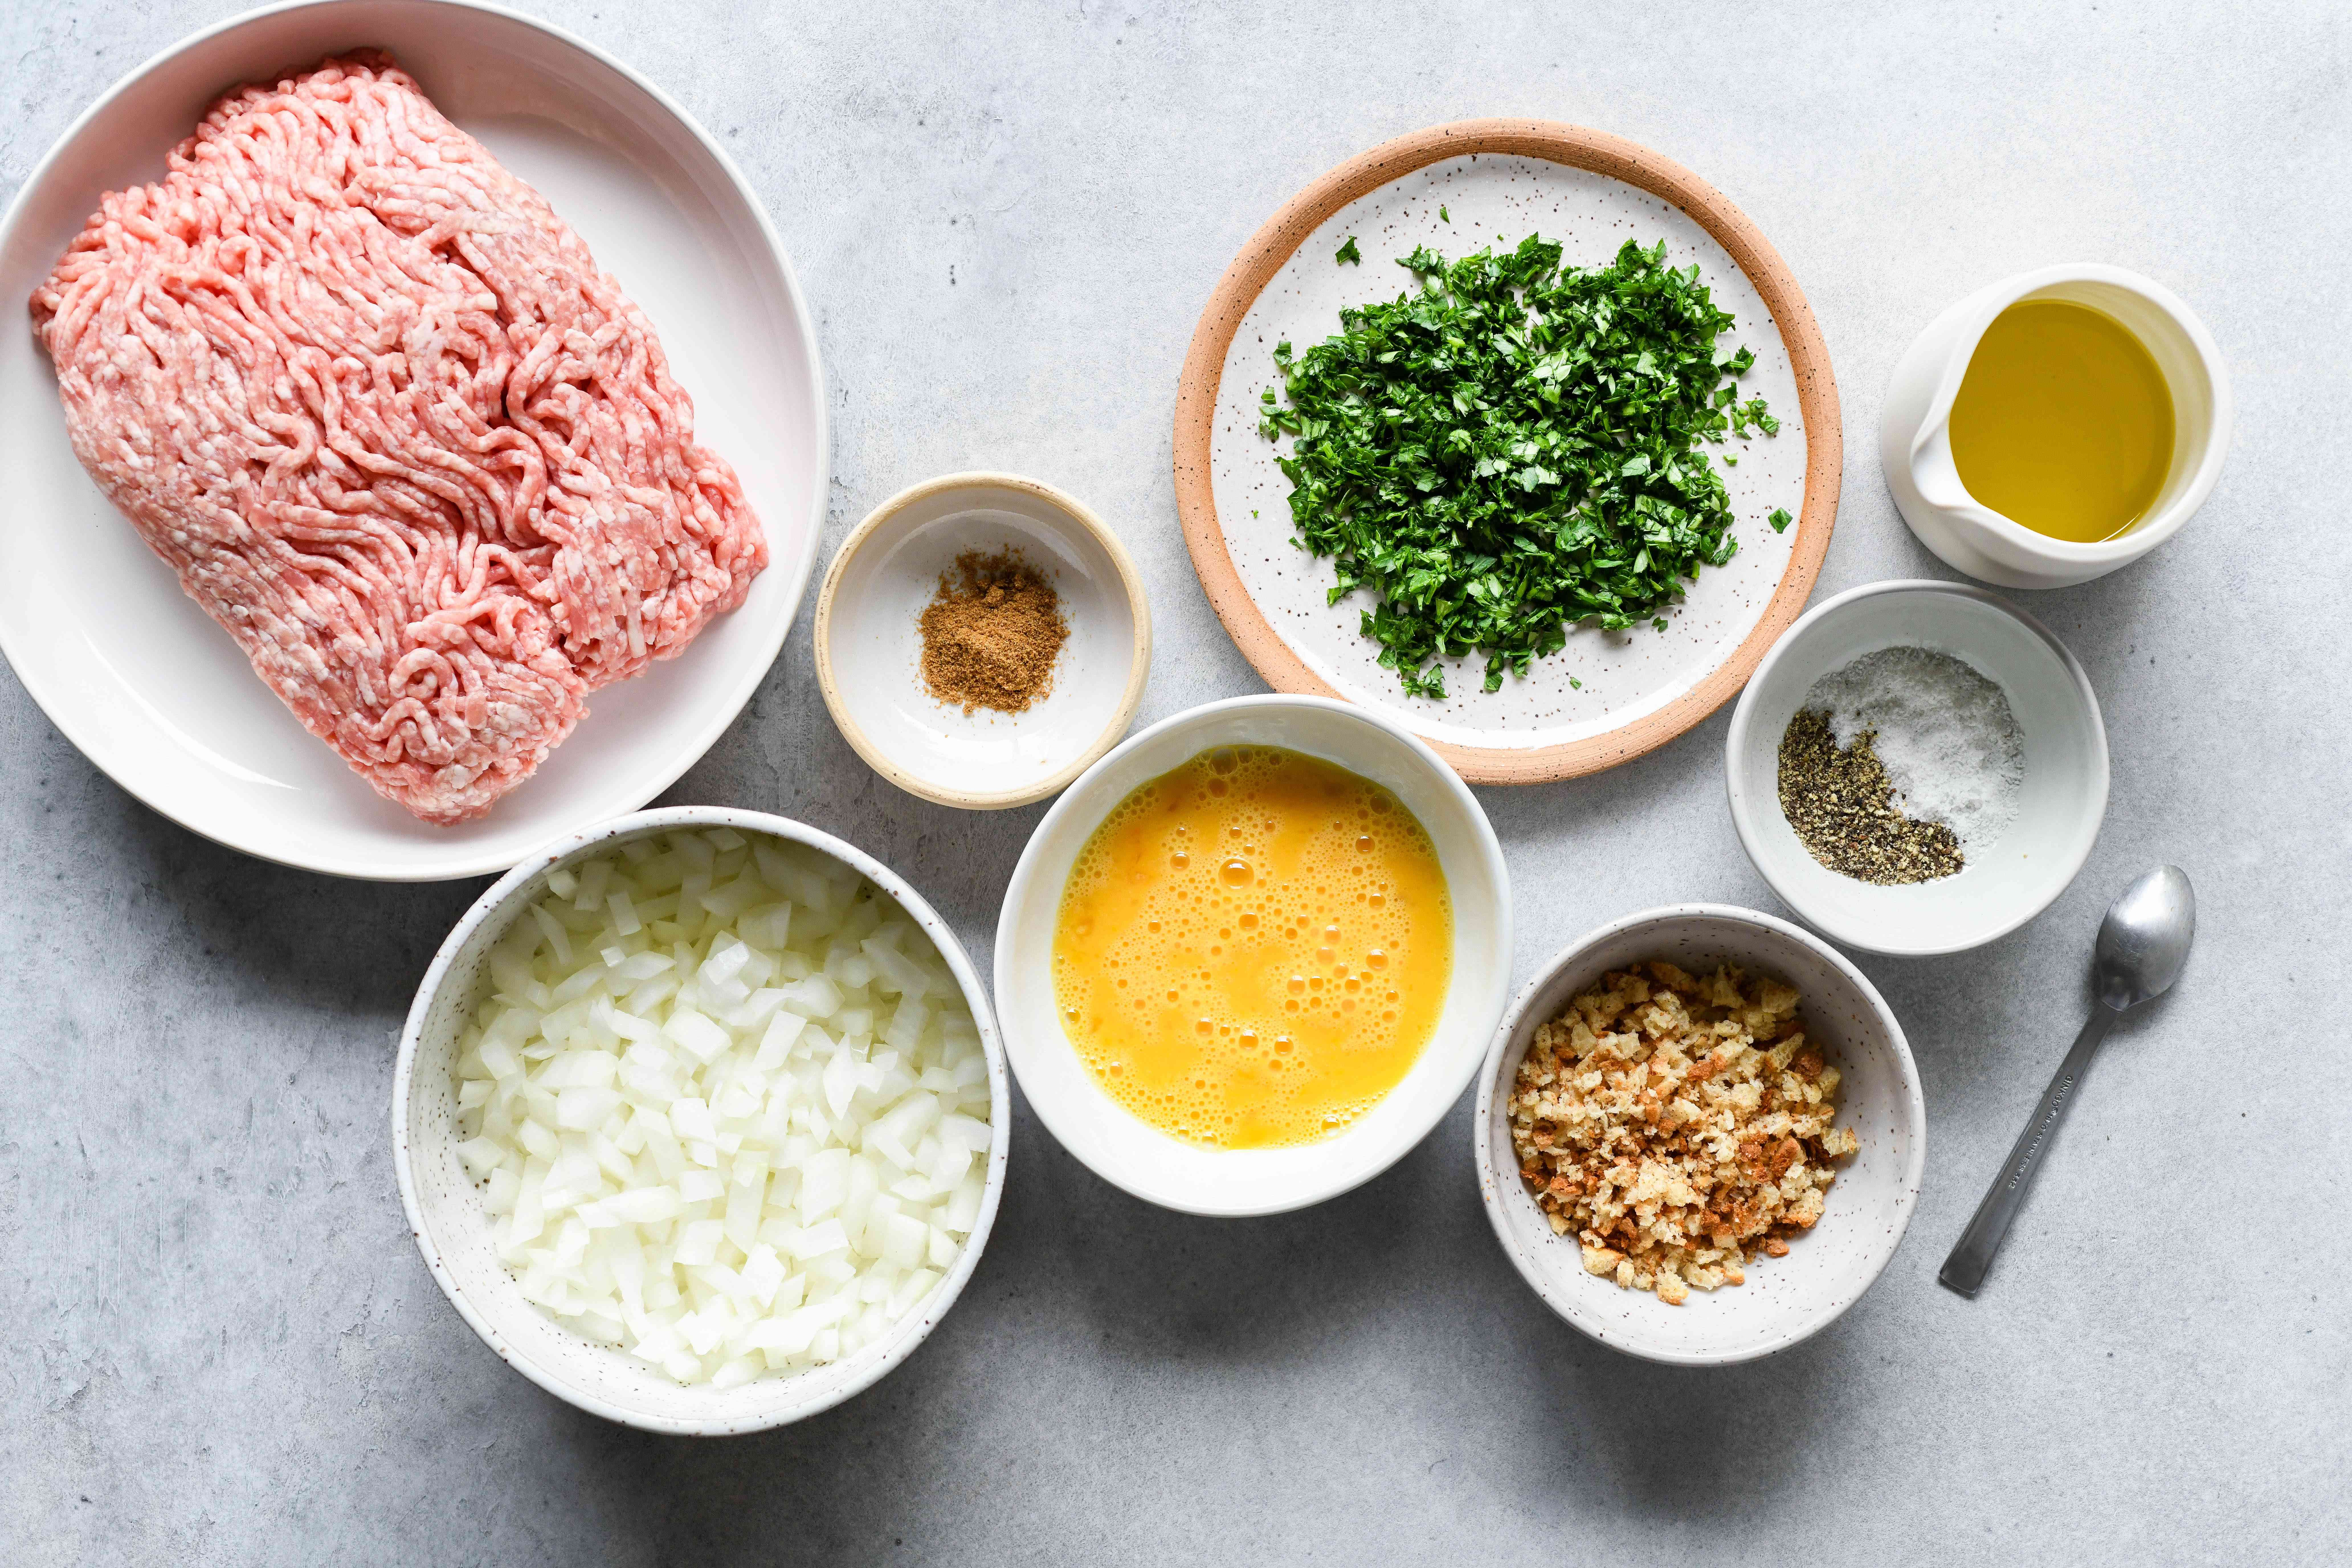 Pork and Onion Meatballs ingredients